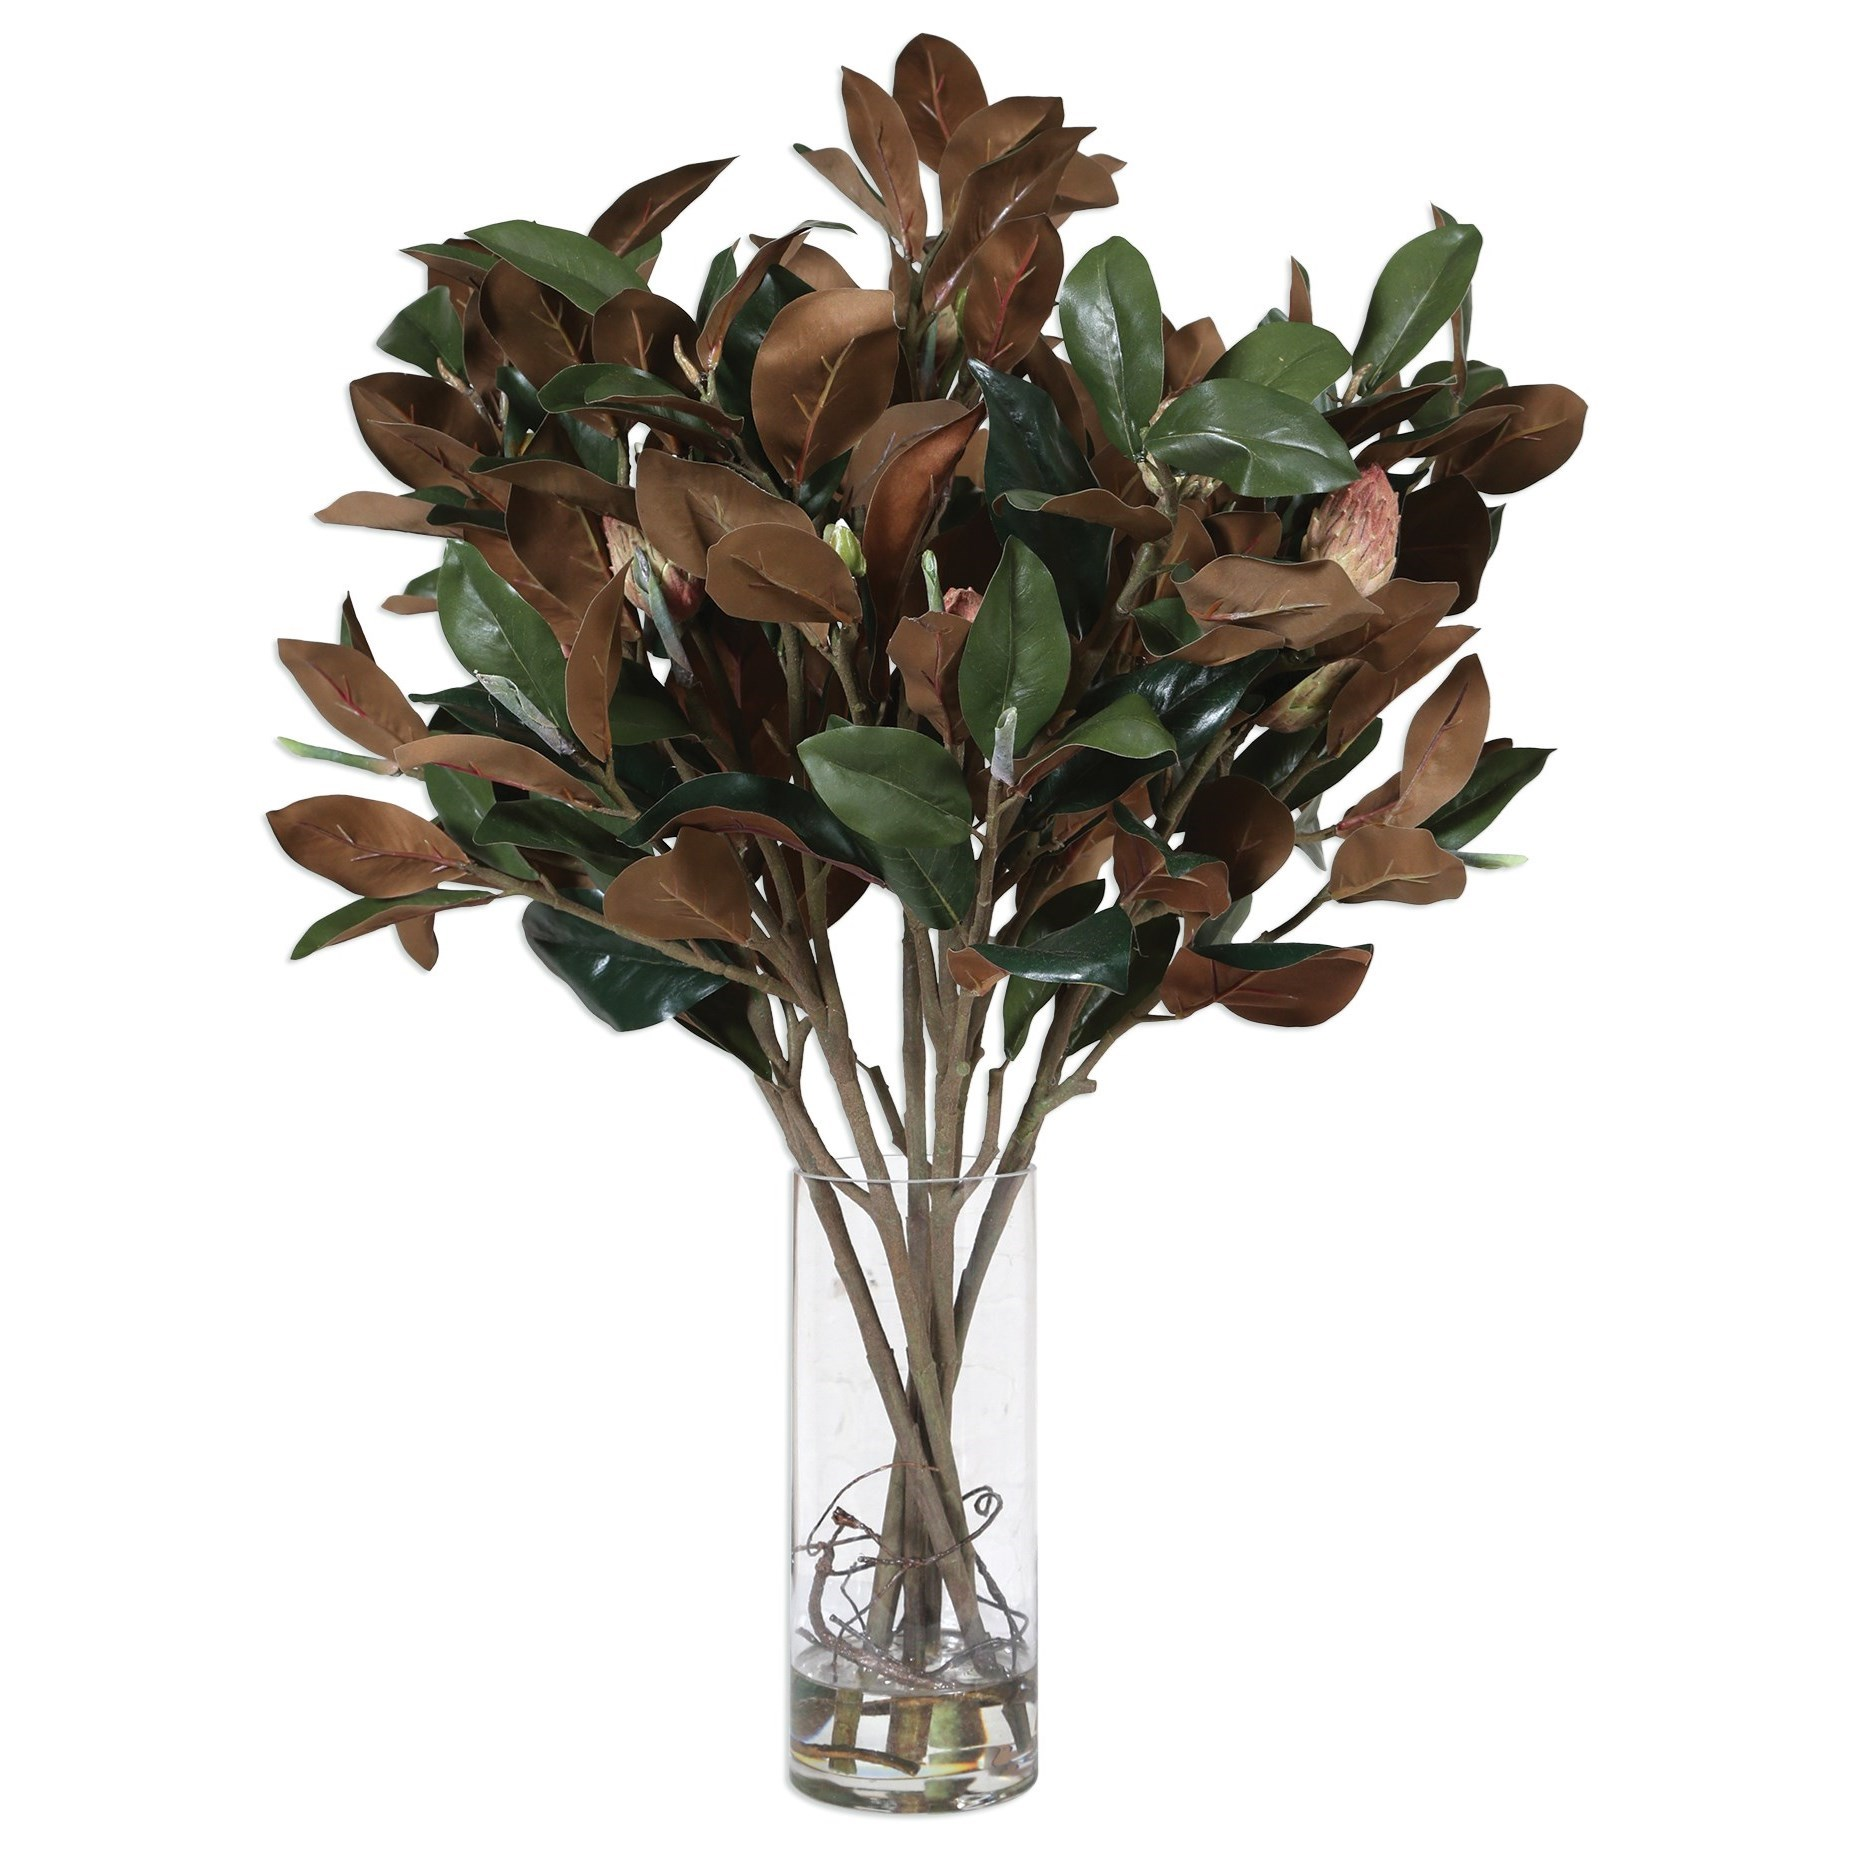 Uttermost Accessories Southern Magnolia Silk Centerpiece - Item Number: 60129